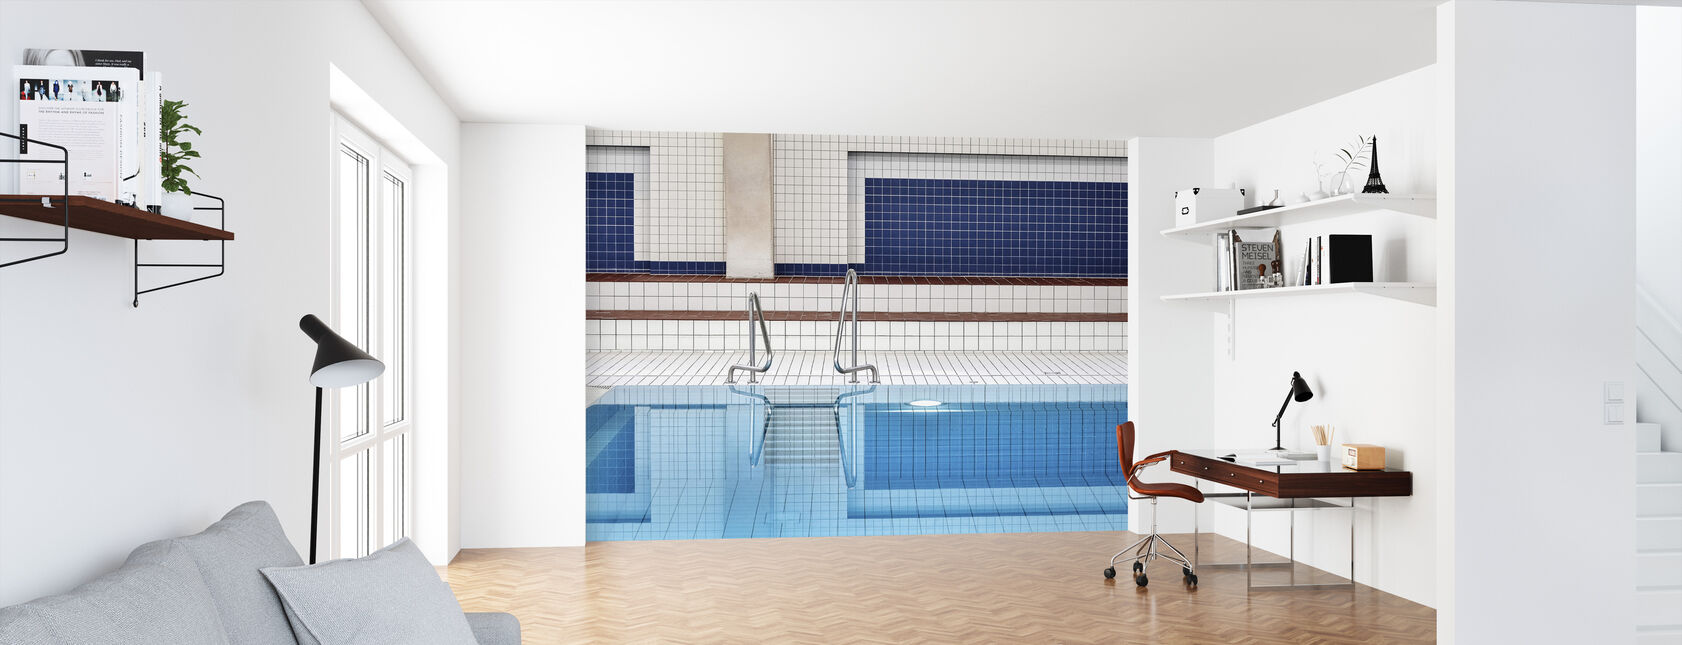 Swimming - Wallpaper - Office